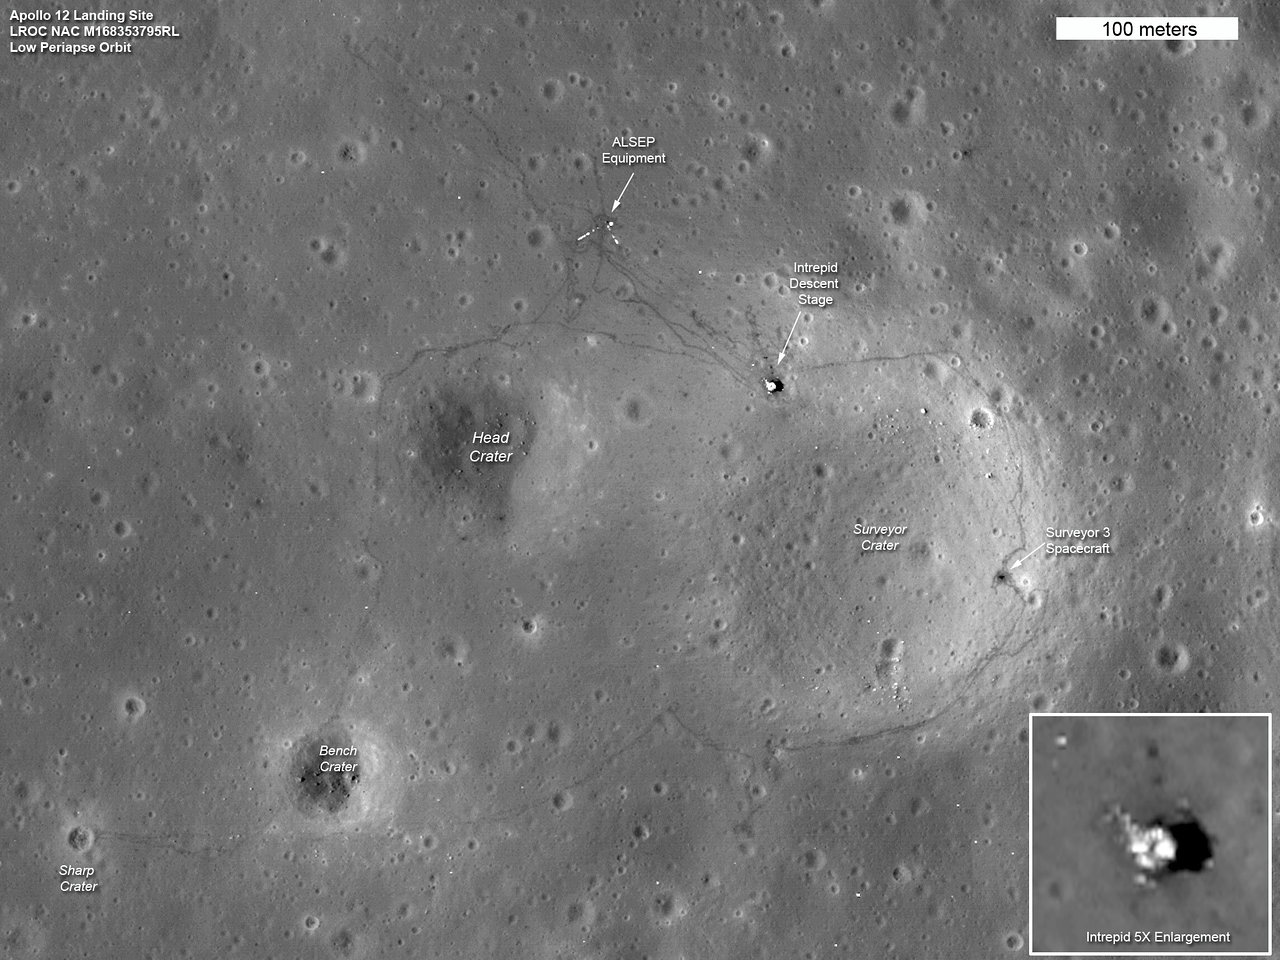 Apollo 12 landing site seen from orbit